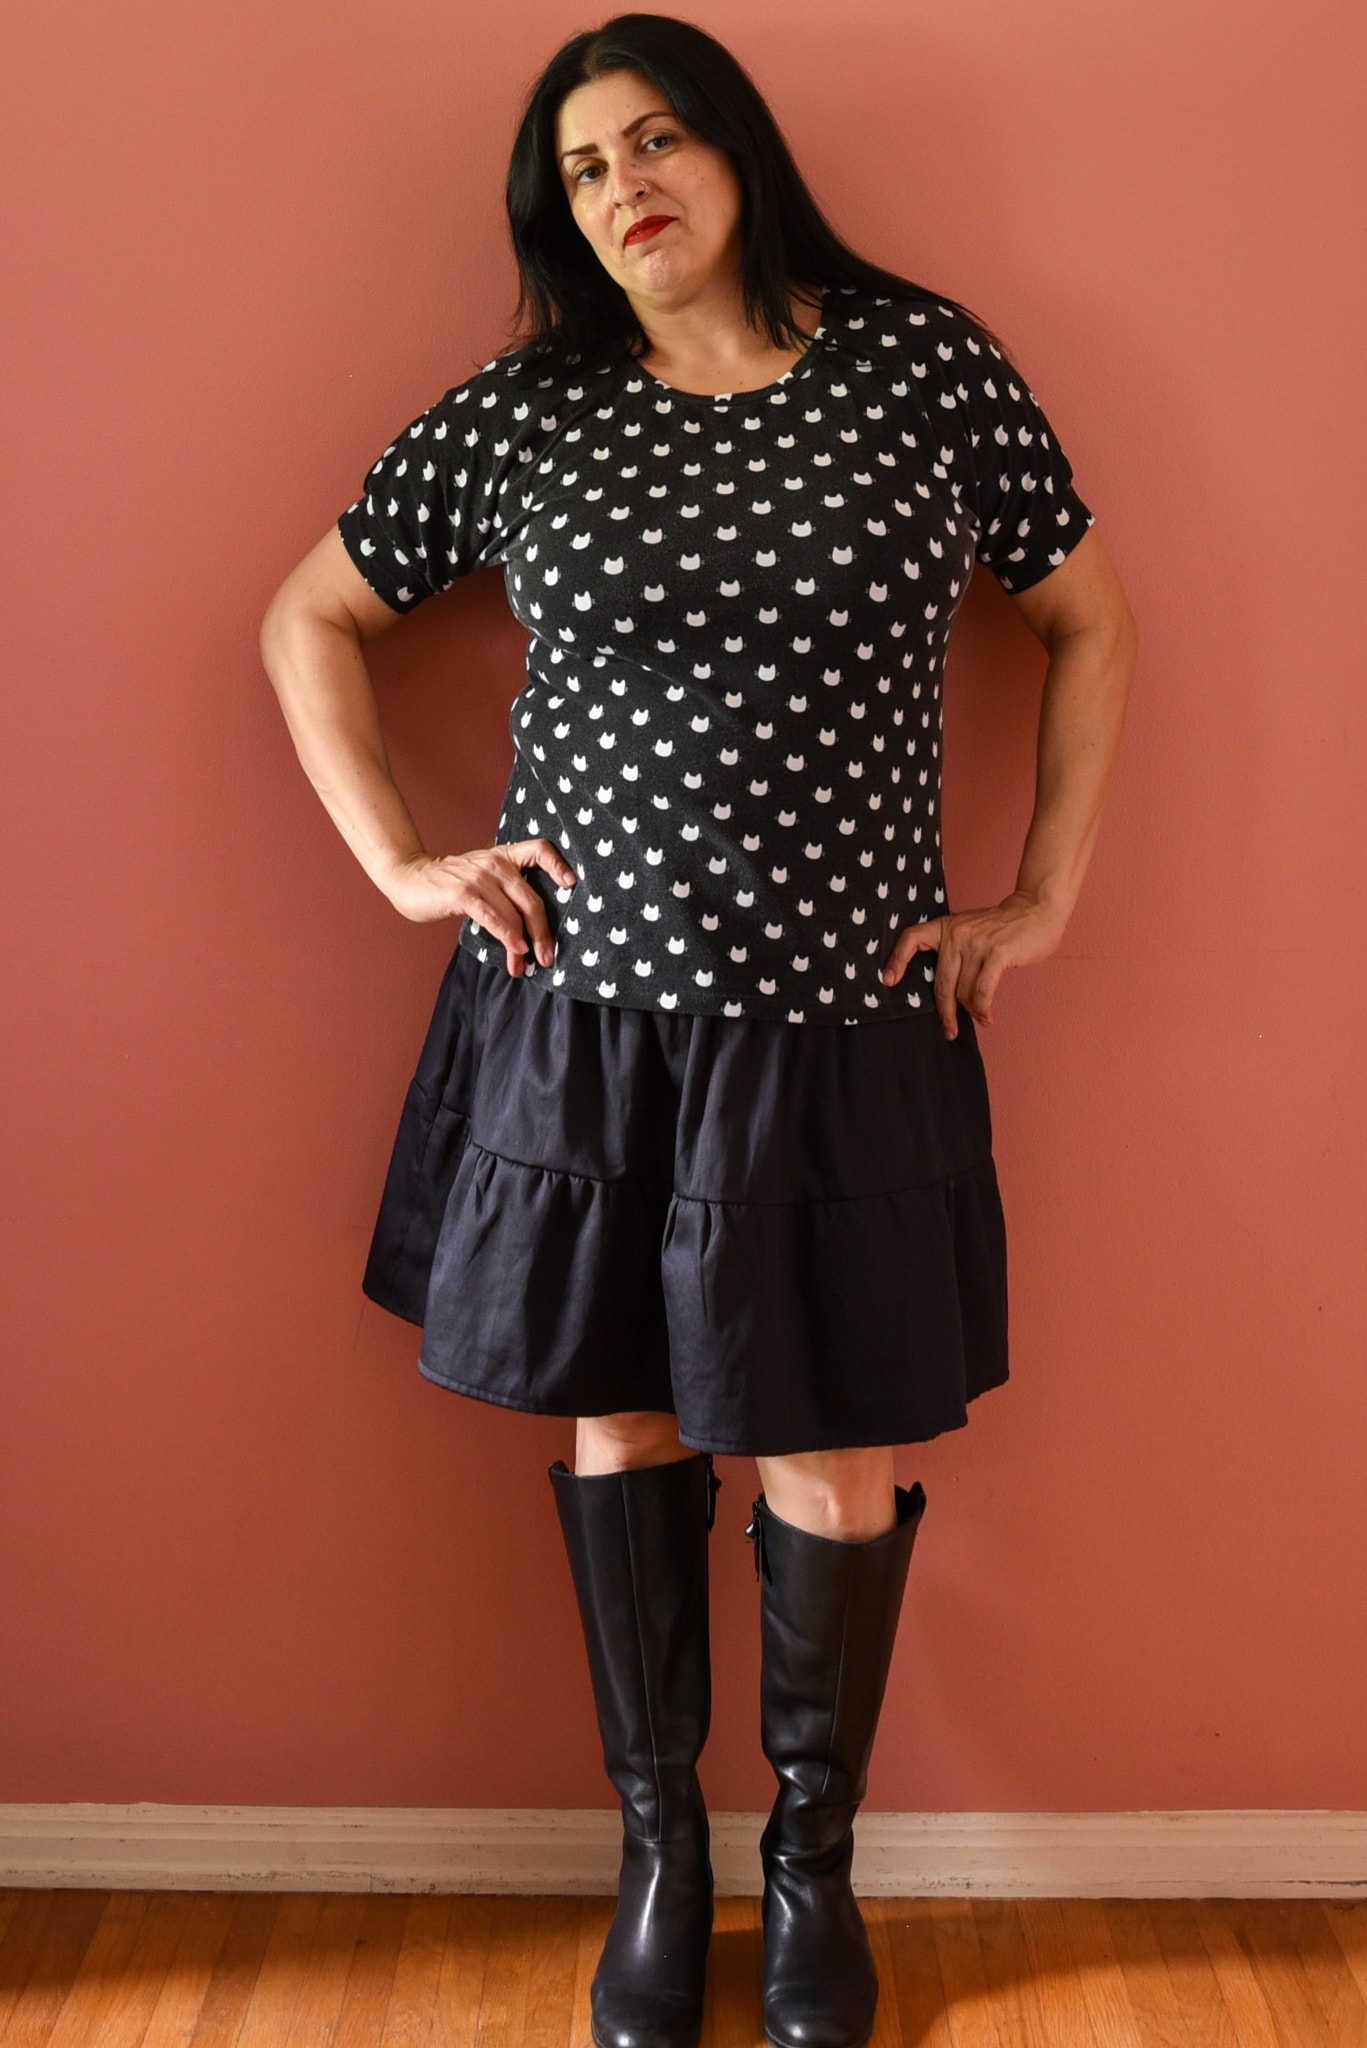 Image of woman with long black hair wearing a black and white polka dotted top with cat prints for dots and a black goth Lolita-sih skirt.